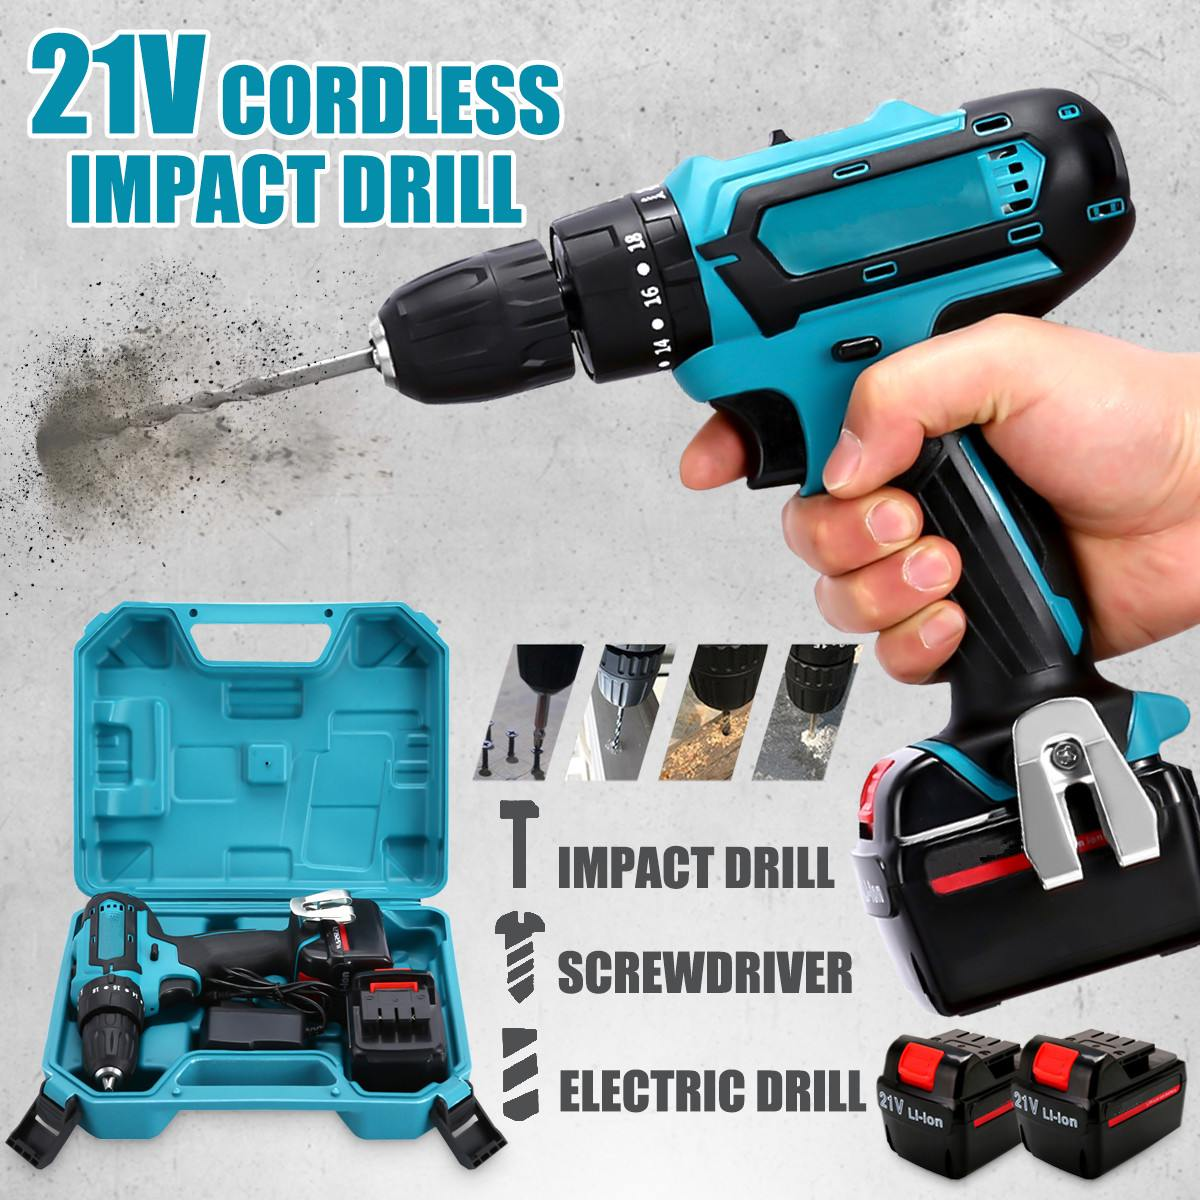 21V Cordless Impact Power Drill Rechargeable 2 Speed Electric Screwdriver Driver with 2 Batteries spta 4 100mm genuine wool buffing ball polishing pad ball hex shank turn power drill or impact driver high speed polisher